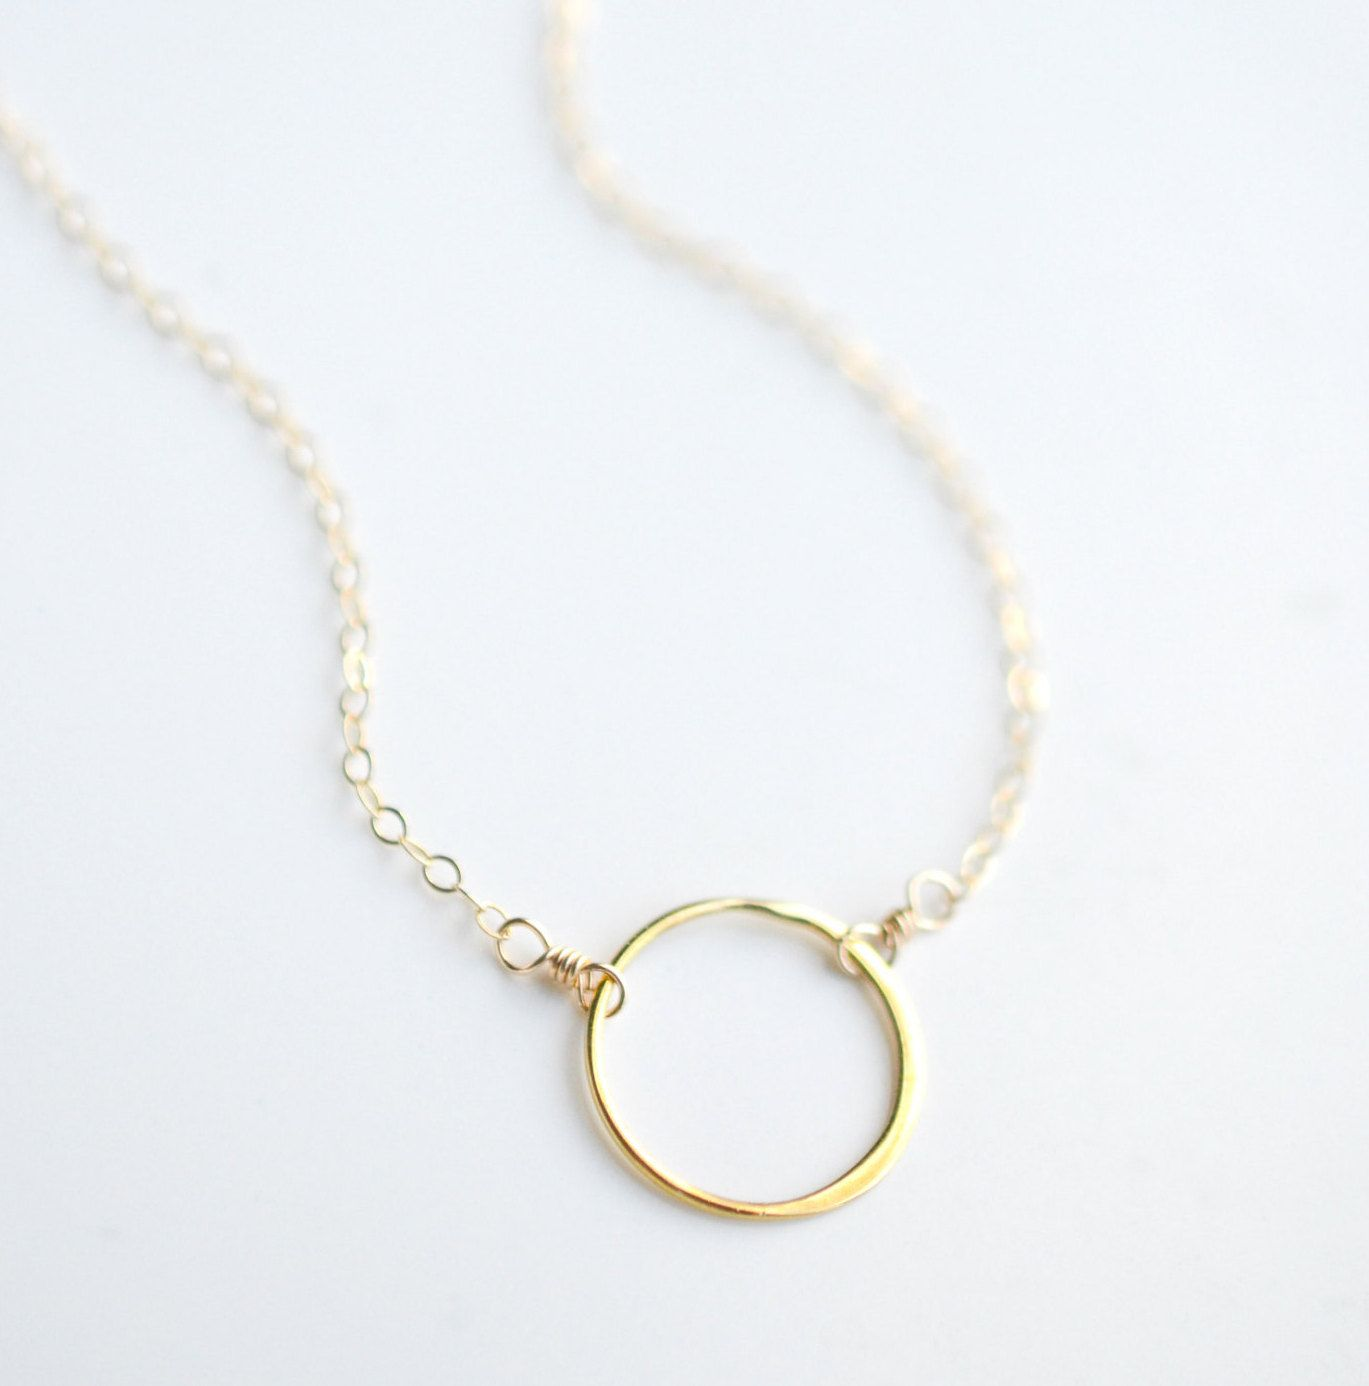 circle shop gold small dsc necklaces necklace